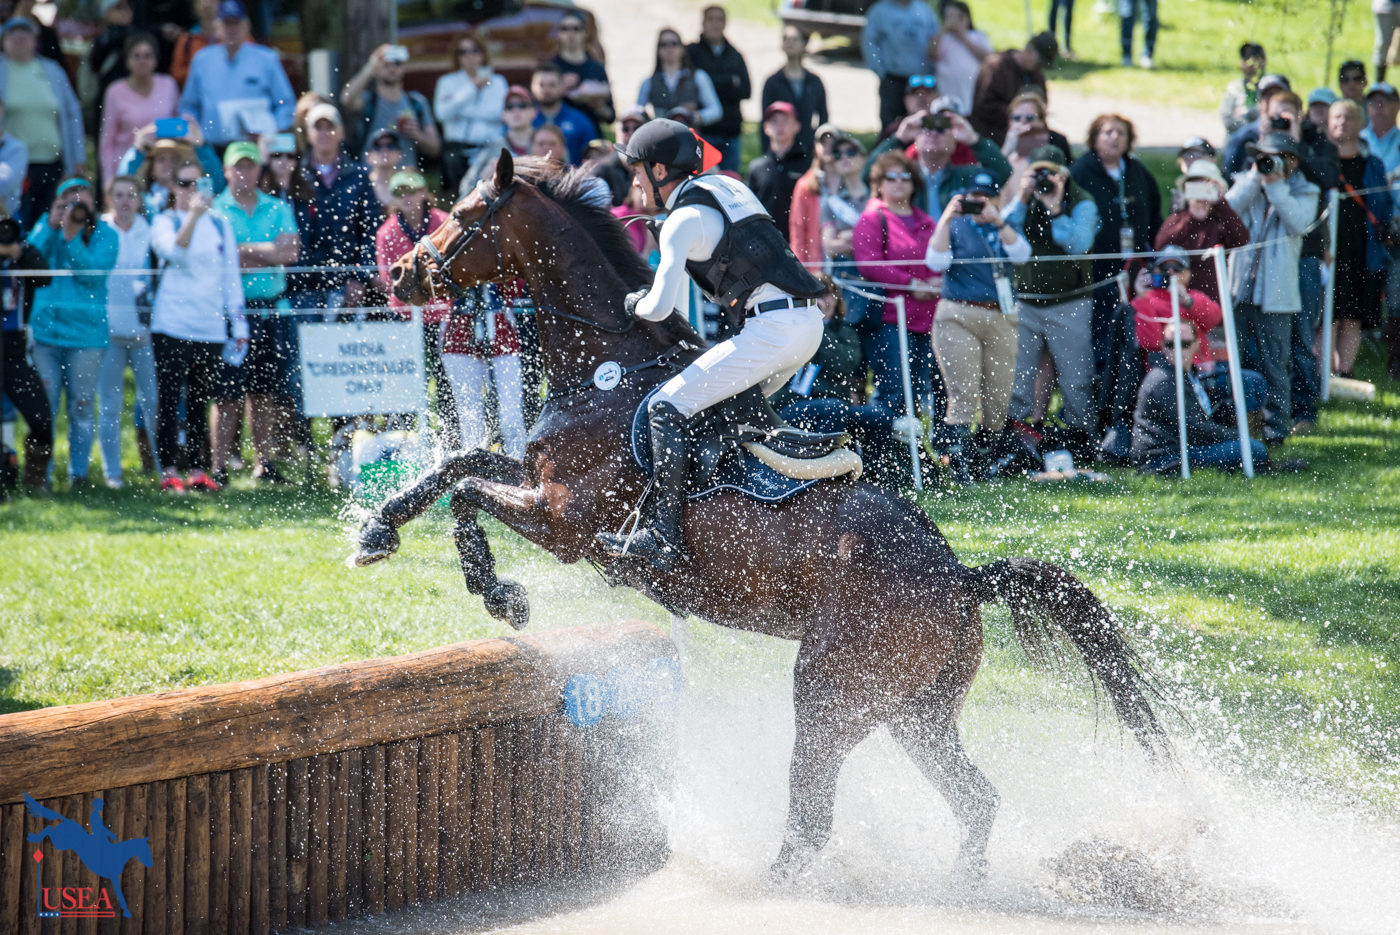 Splashing up the bounce bank. USEA/Leslie Mintz Photo.